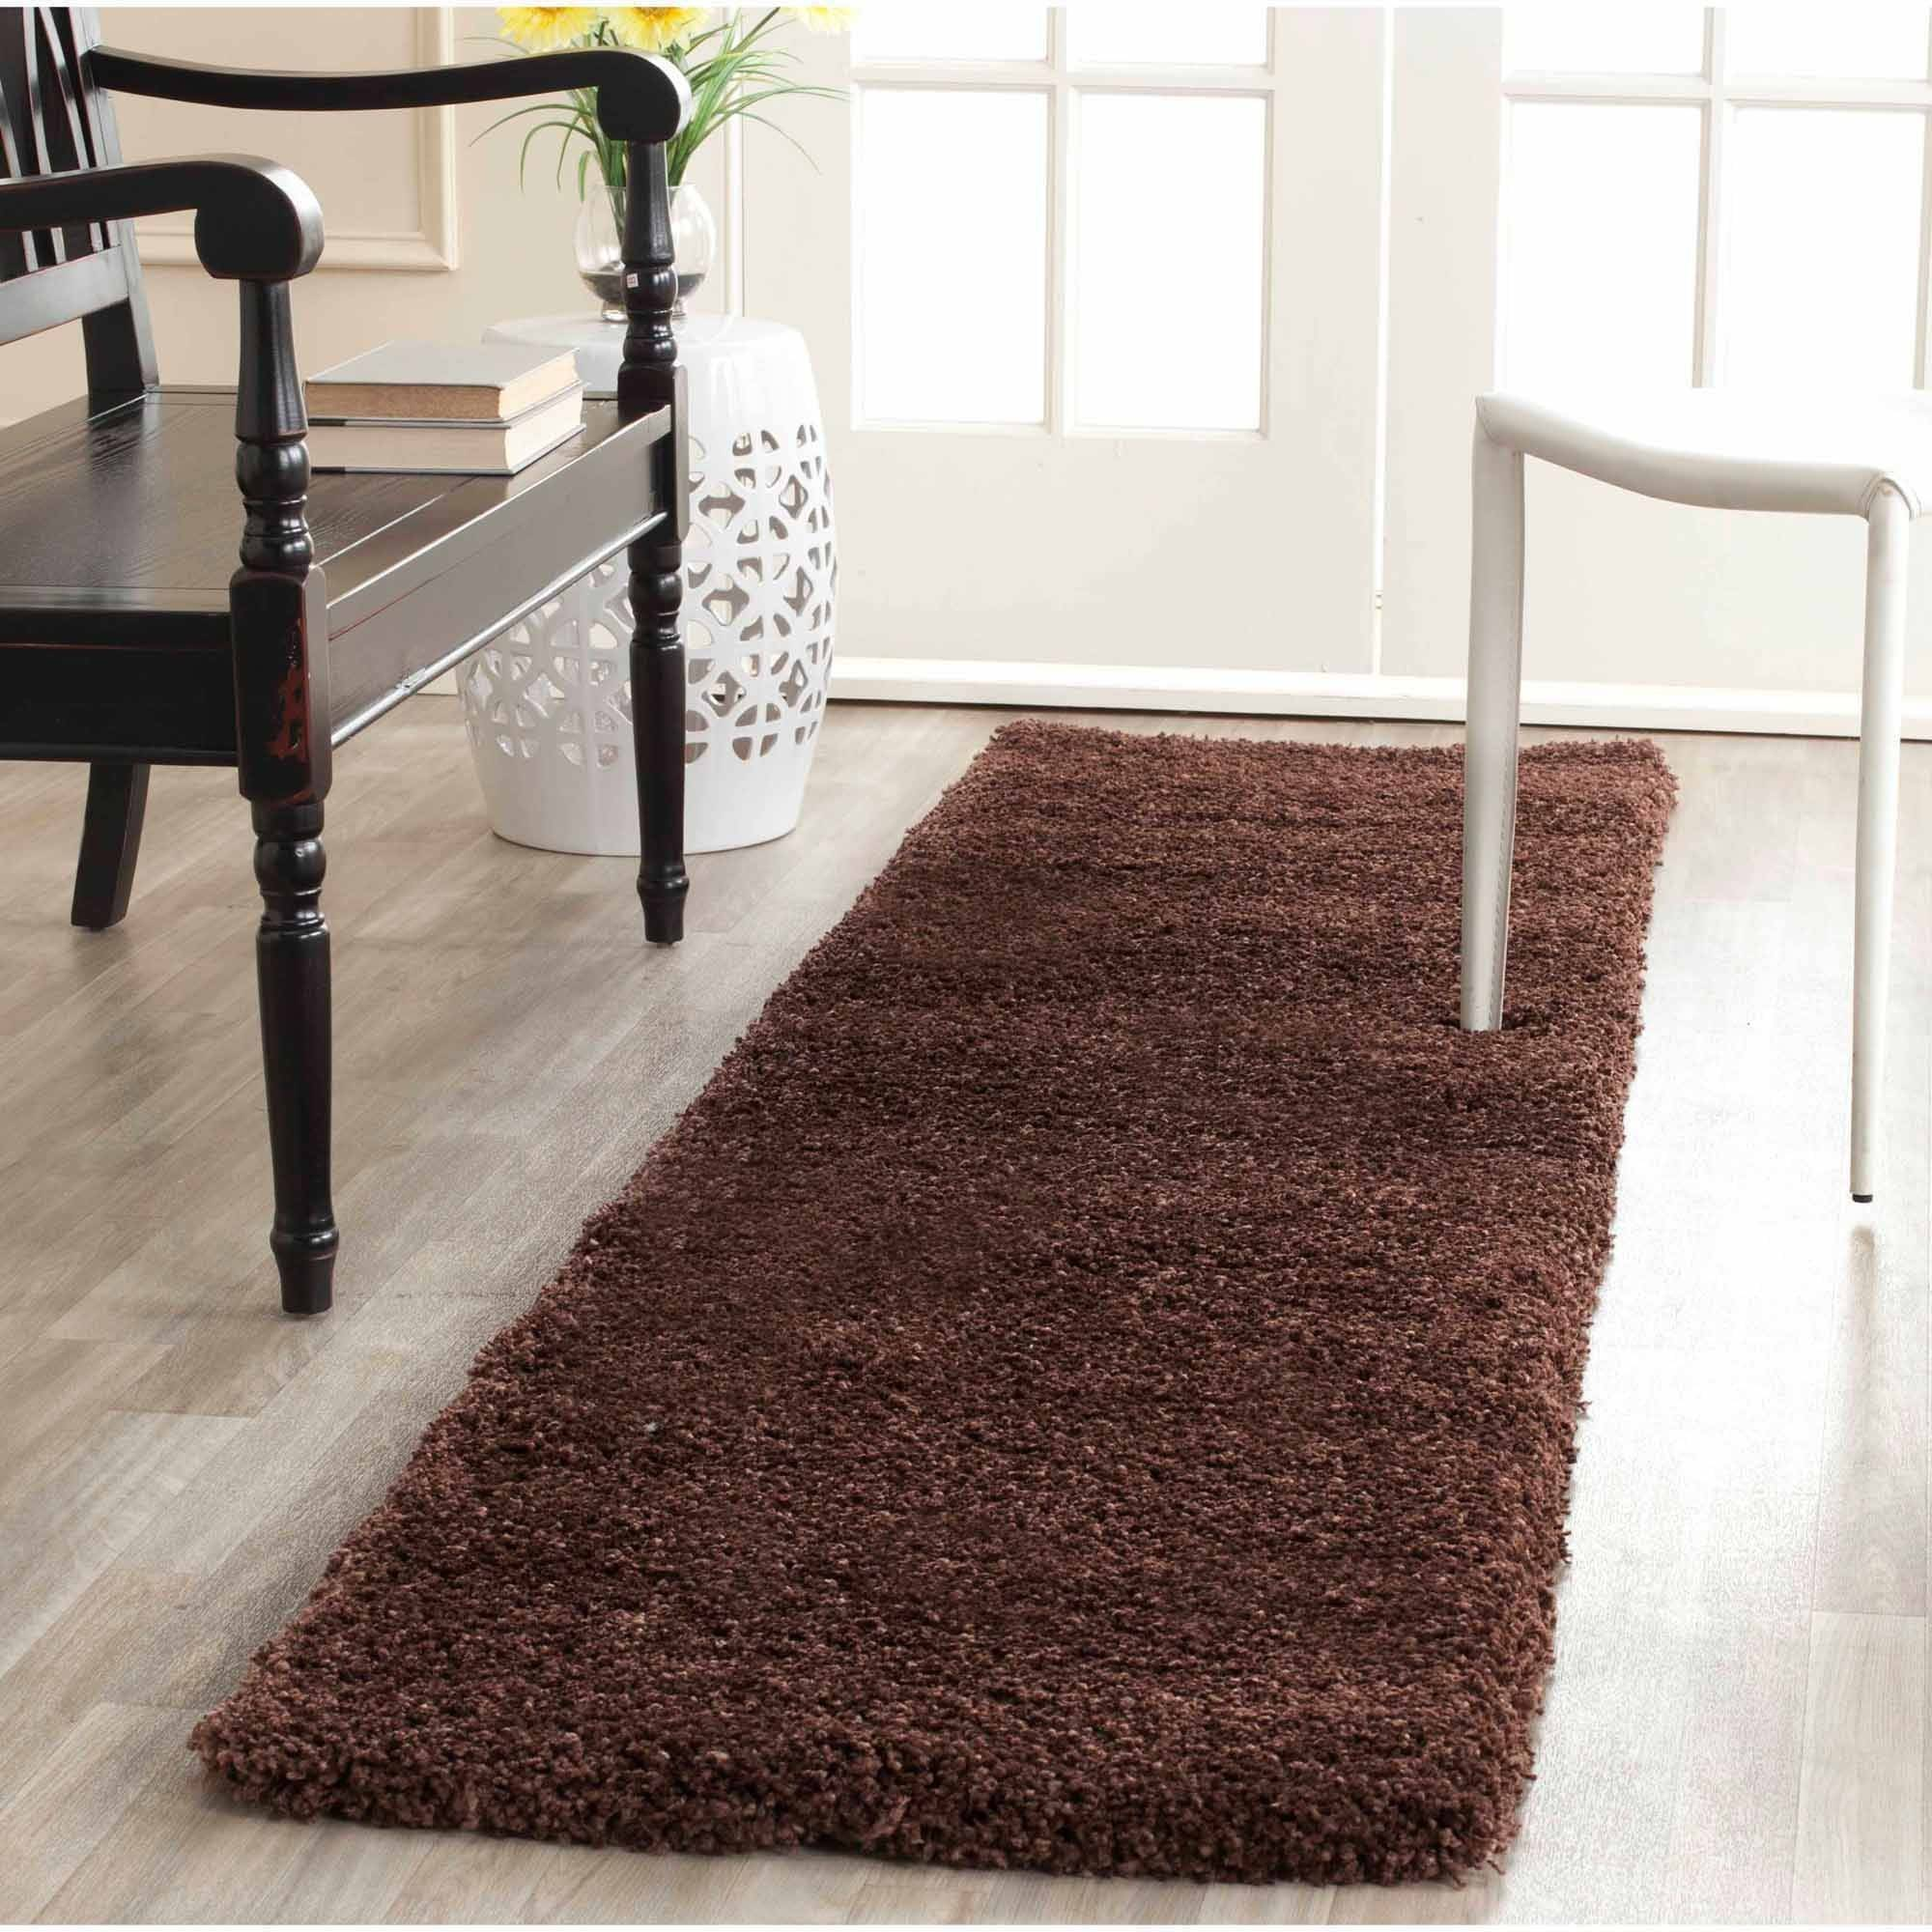 Safavieh Harlow Machine-Made Milan Shag Runner Rug